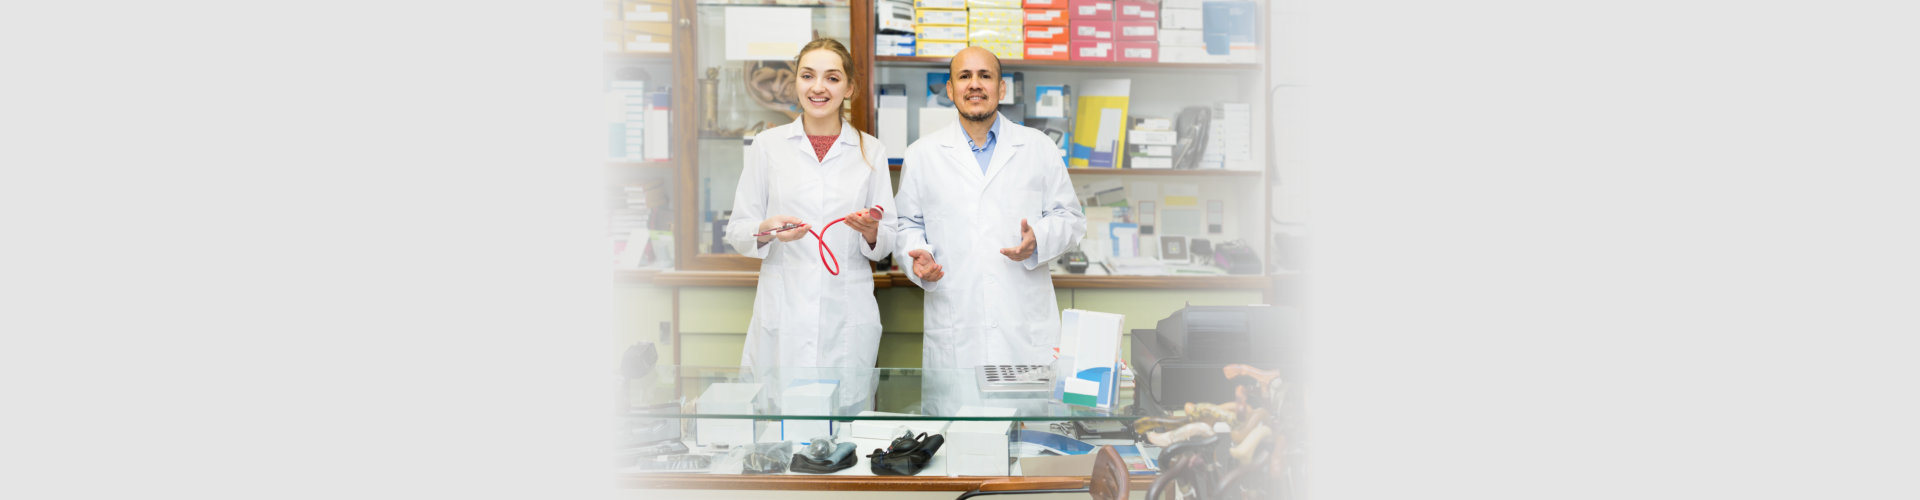 two orthopedists working in special store with orthopedic goods